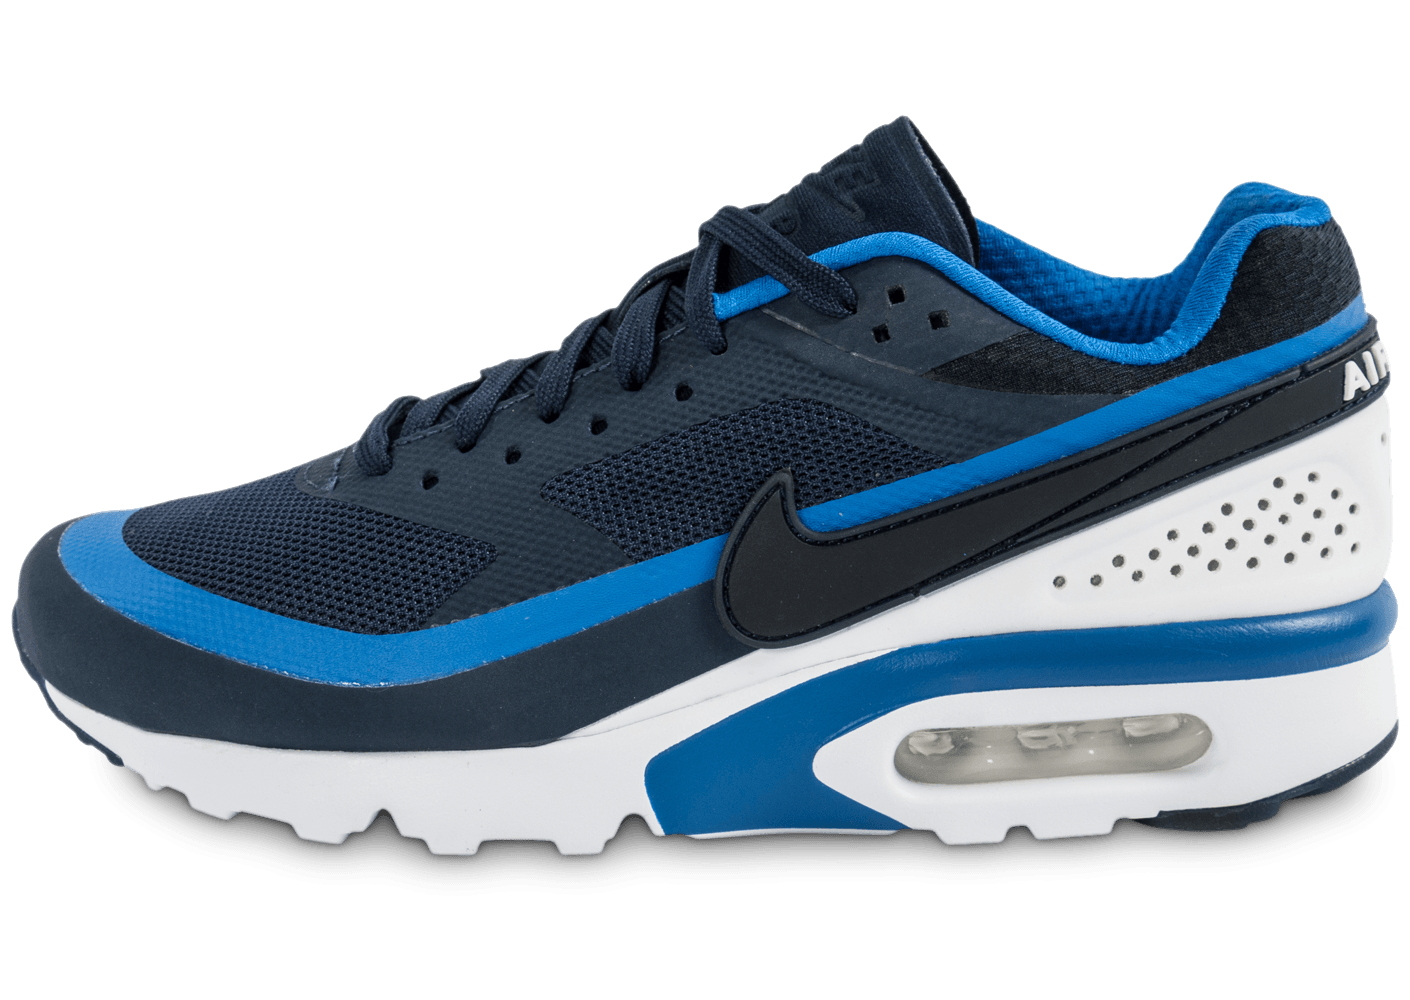 nike air max bw ultra bleu marine chaussures homme. Black Bedroom Furniture Sets. Home Design Ideas